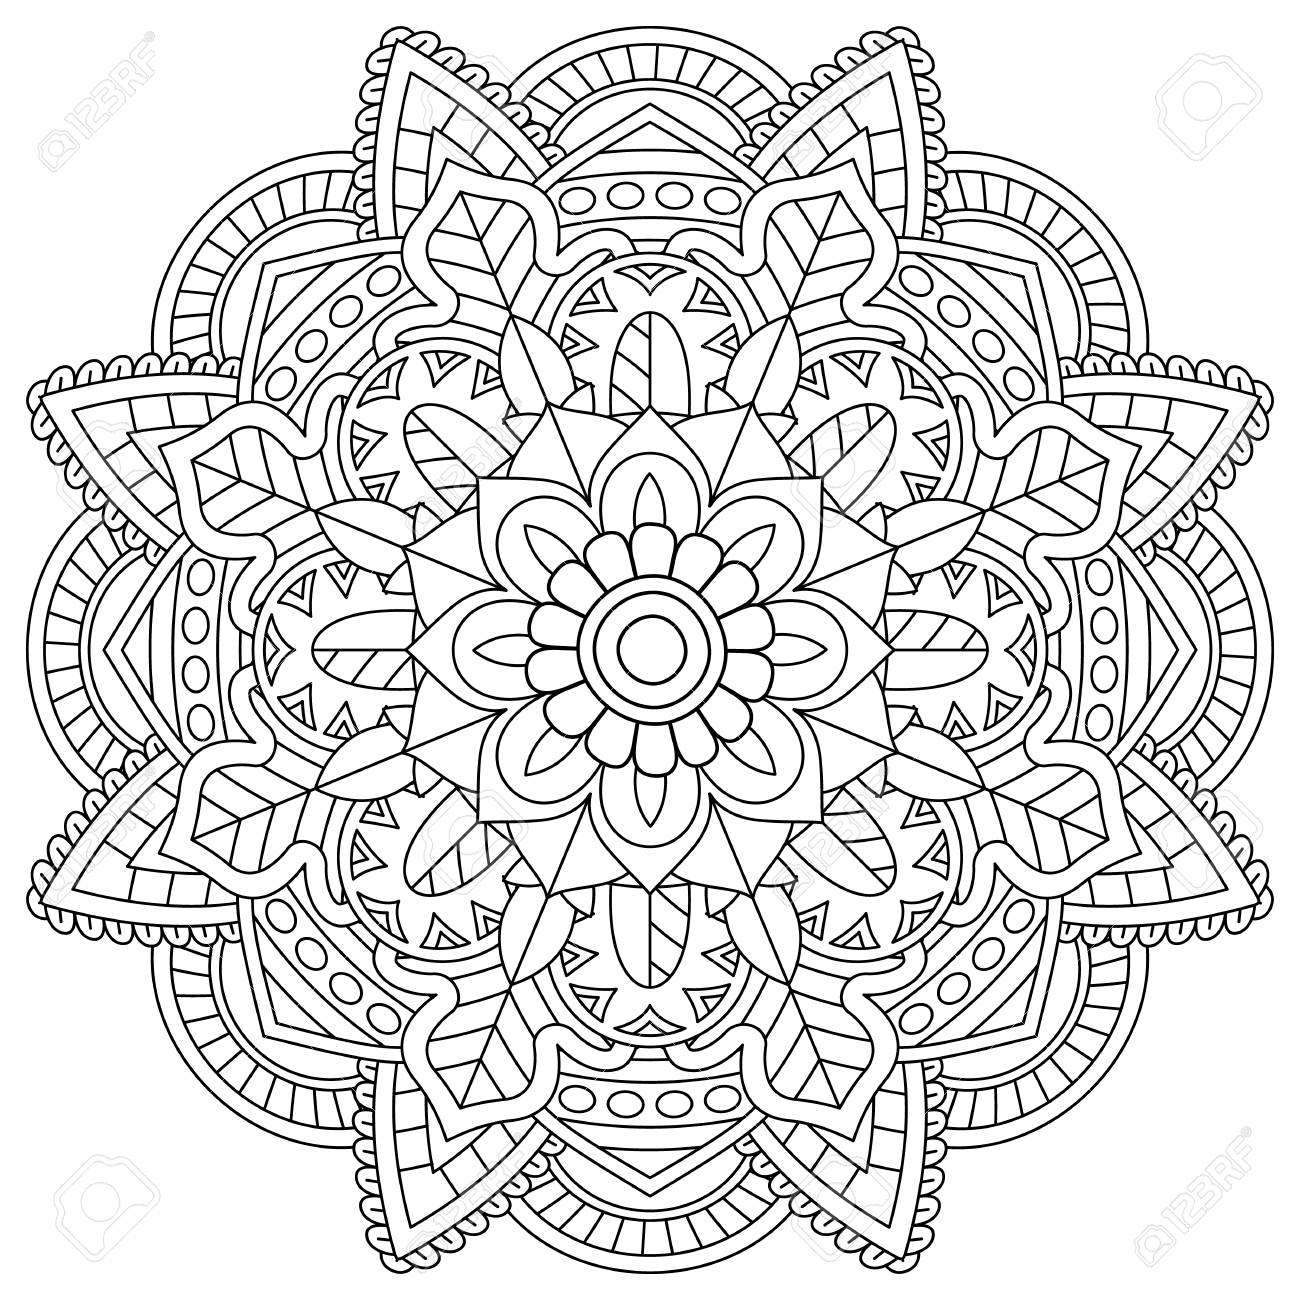 flower mandala for coloring pages - 108946202